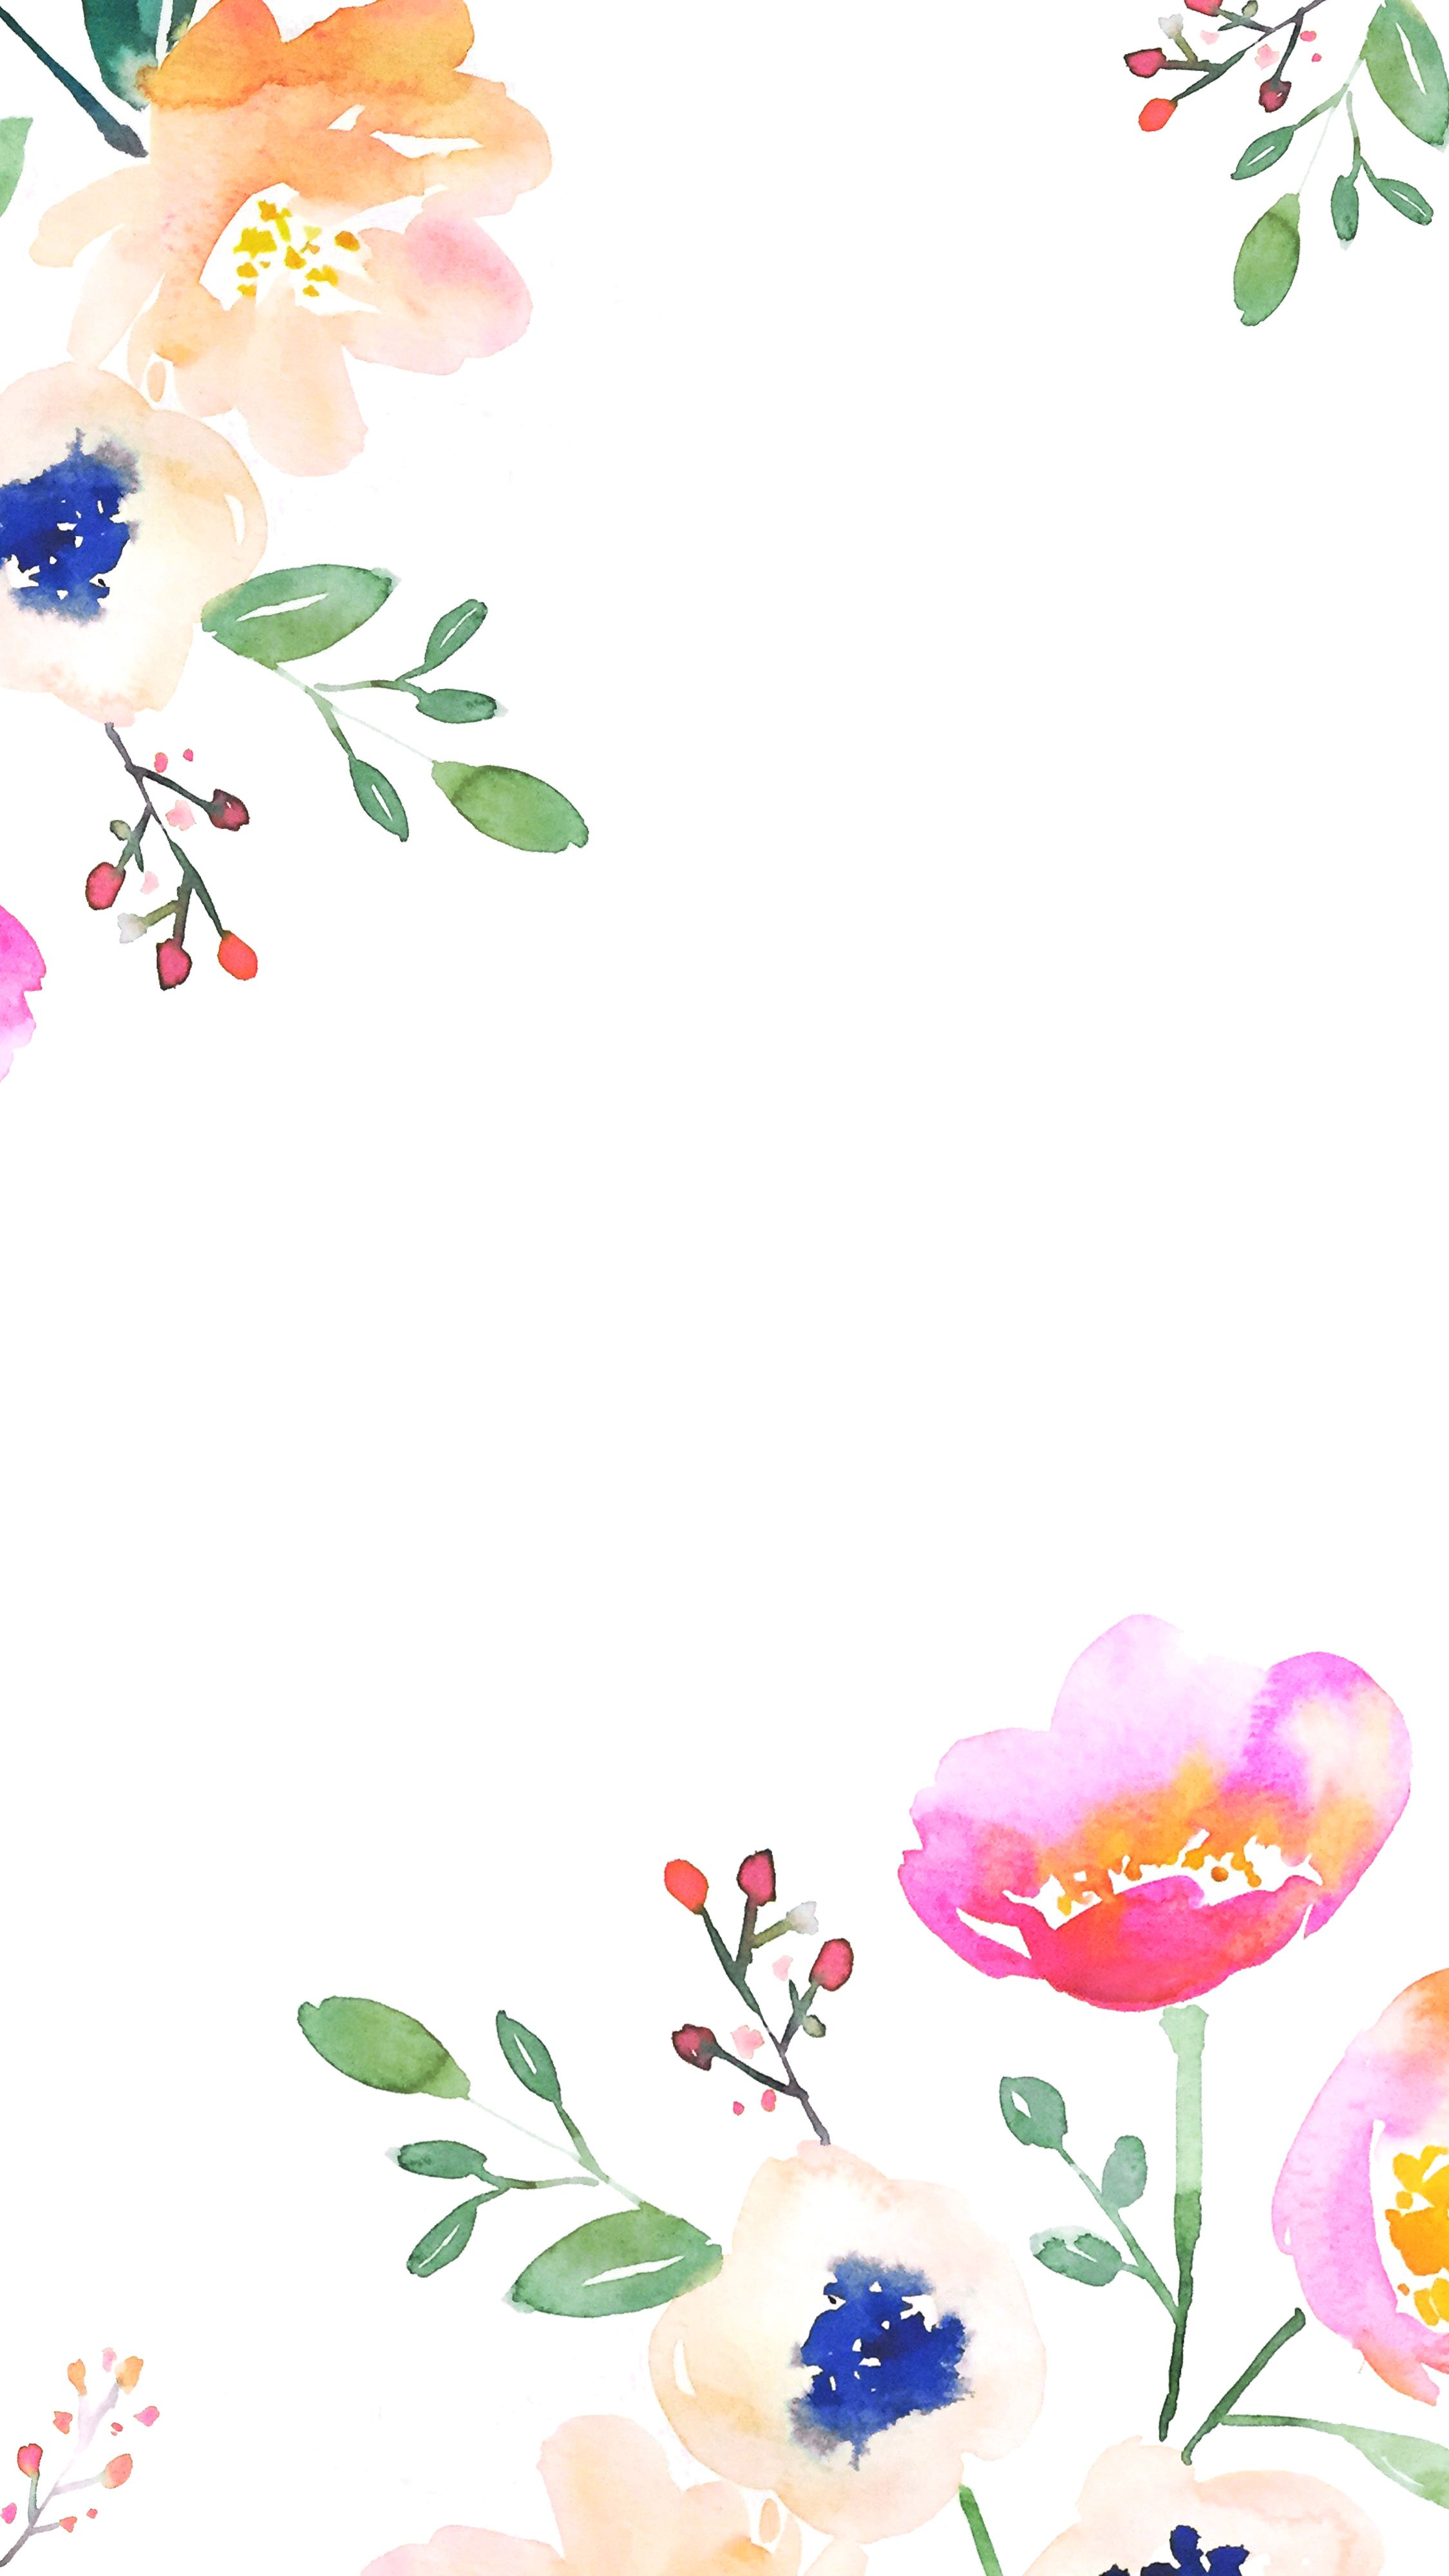 Pin Maria Pole Iphone Floral Watercolor